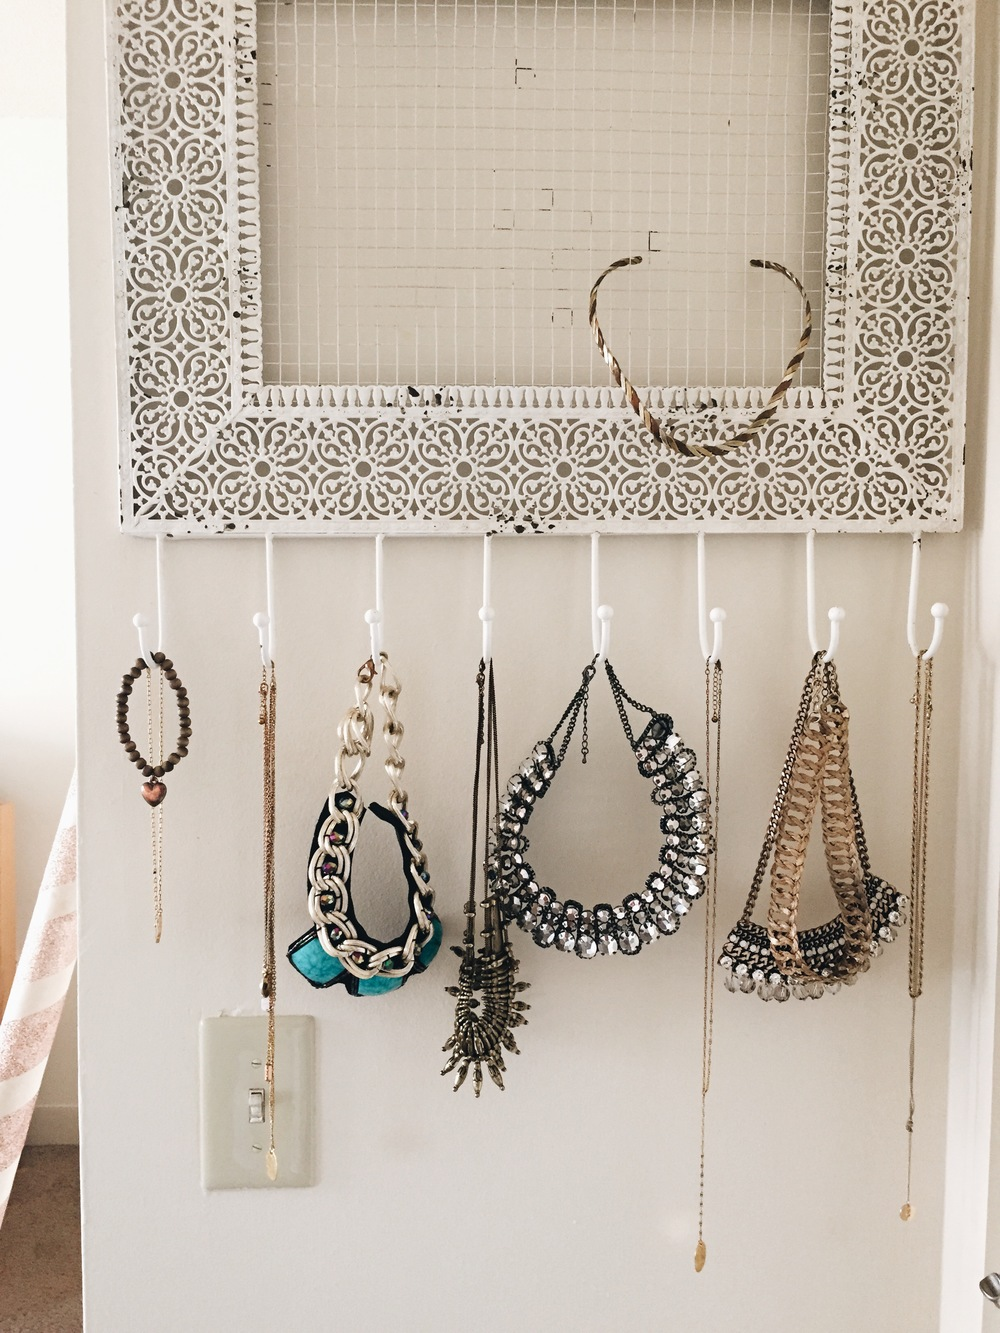 Necklace Organizer: Marshall's